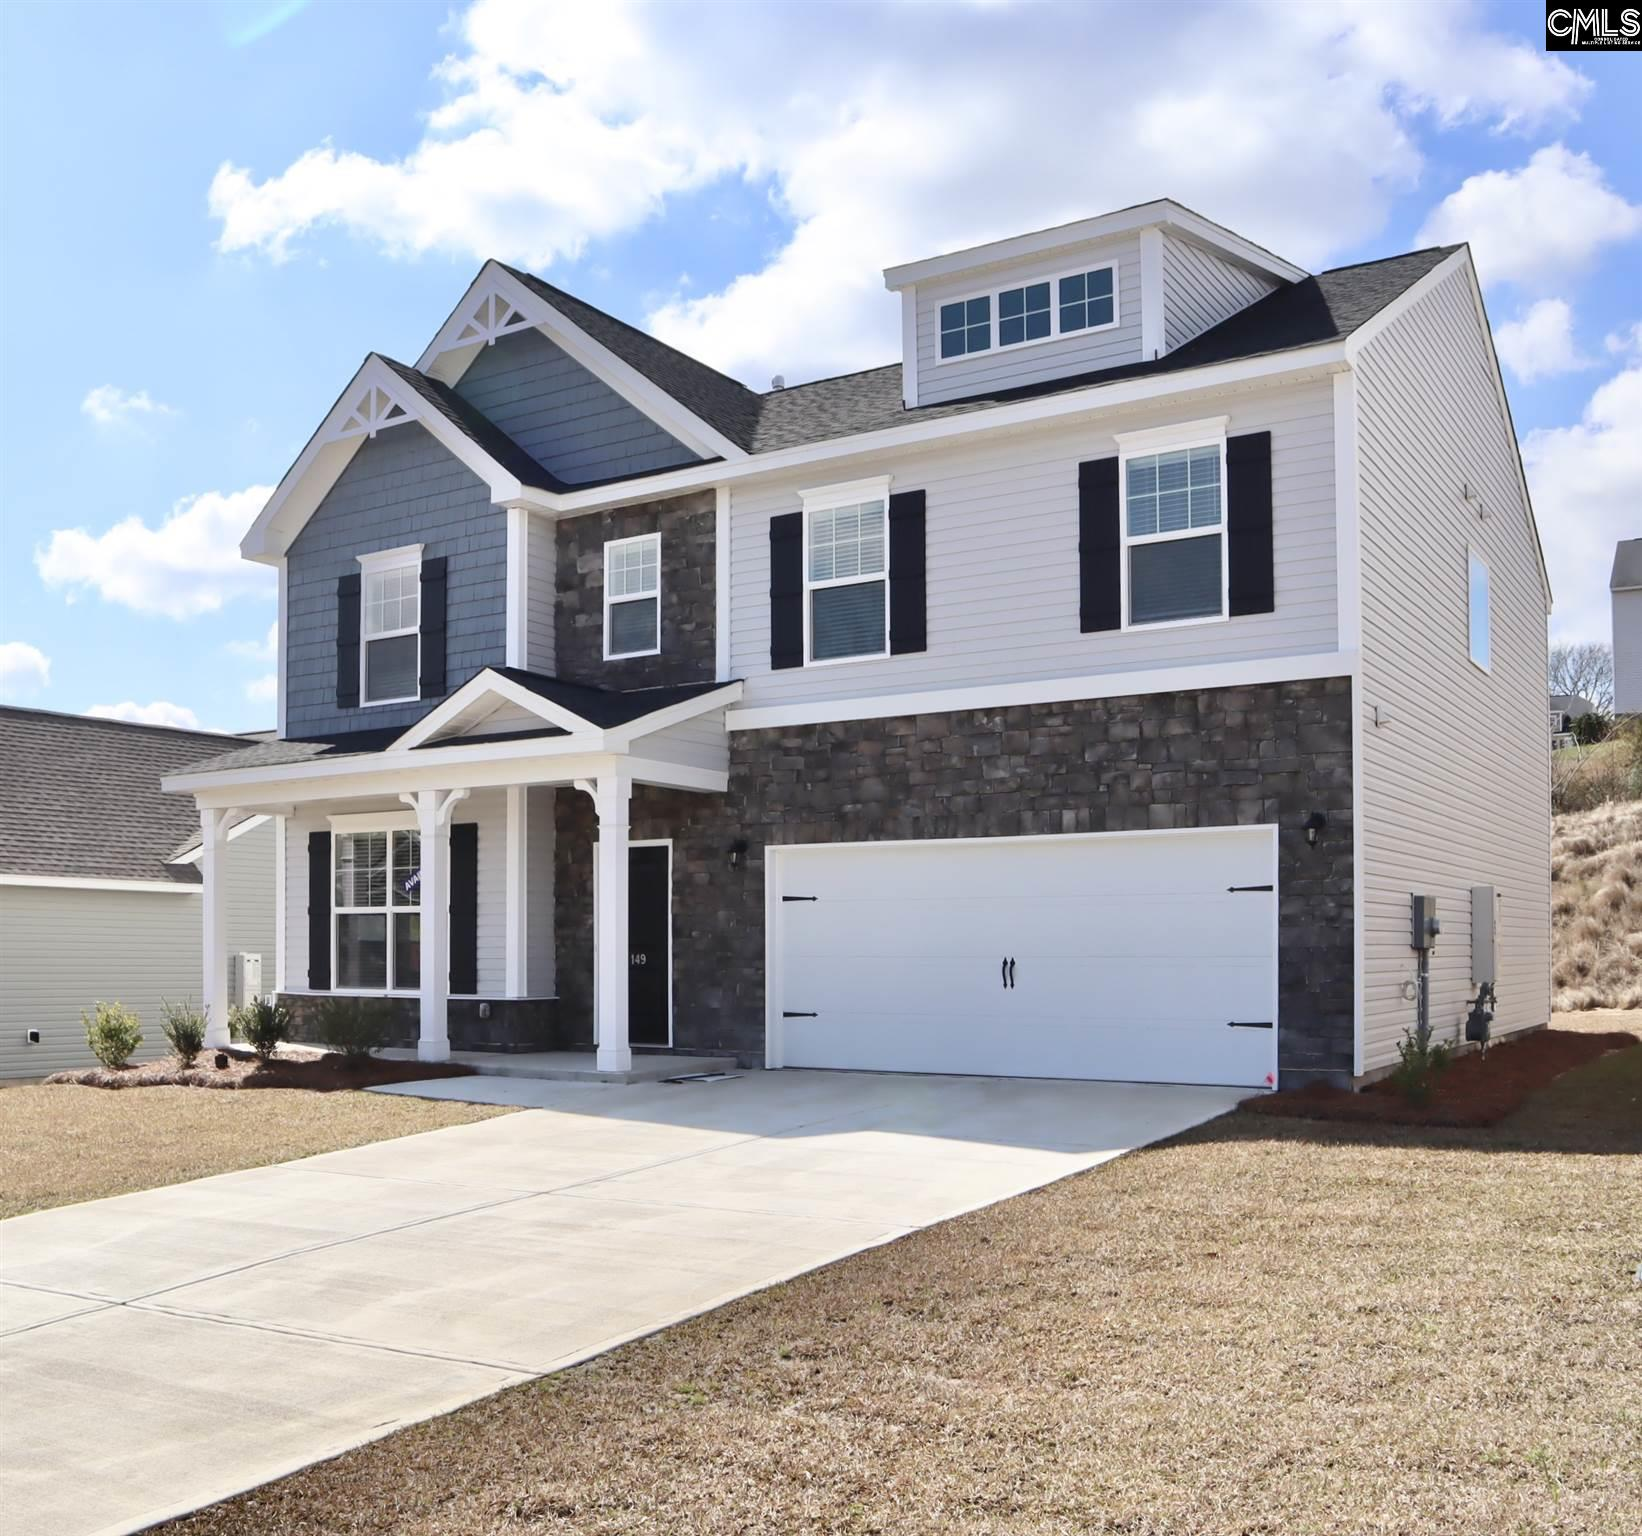 149 Sunny View Lexington, SC 29072